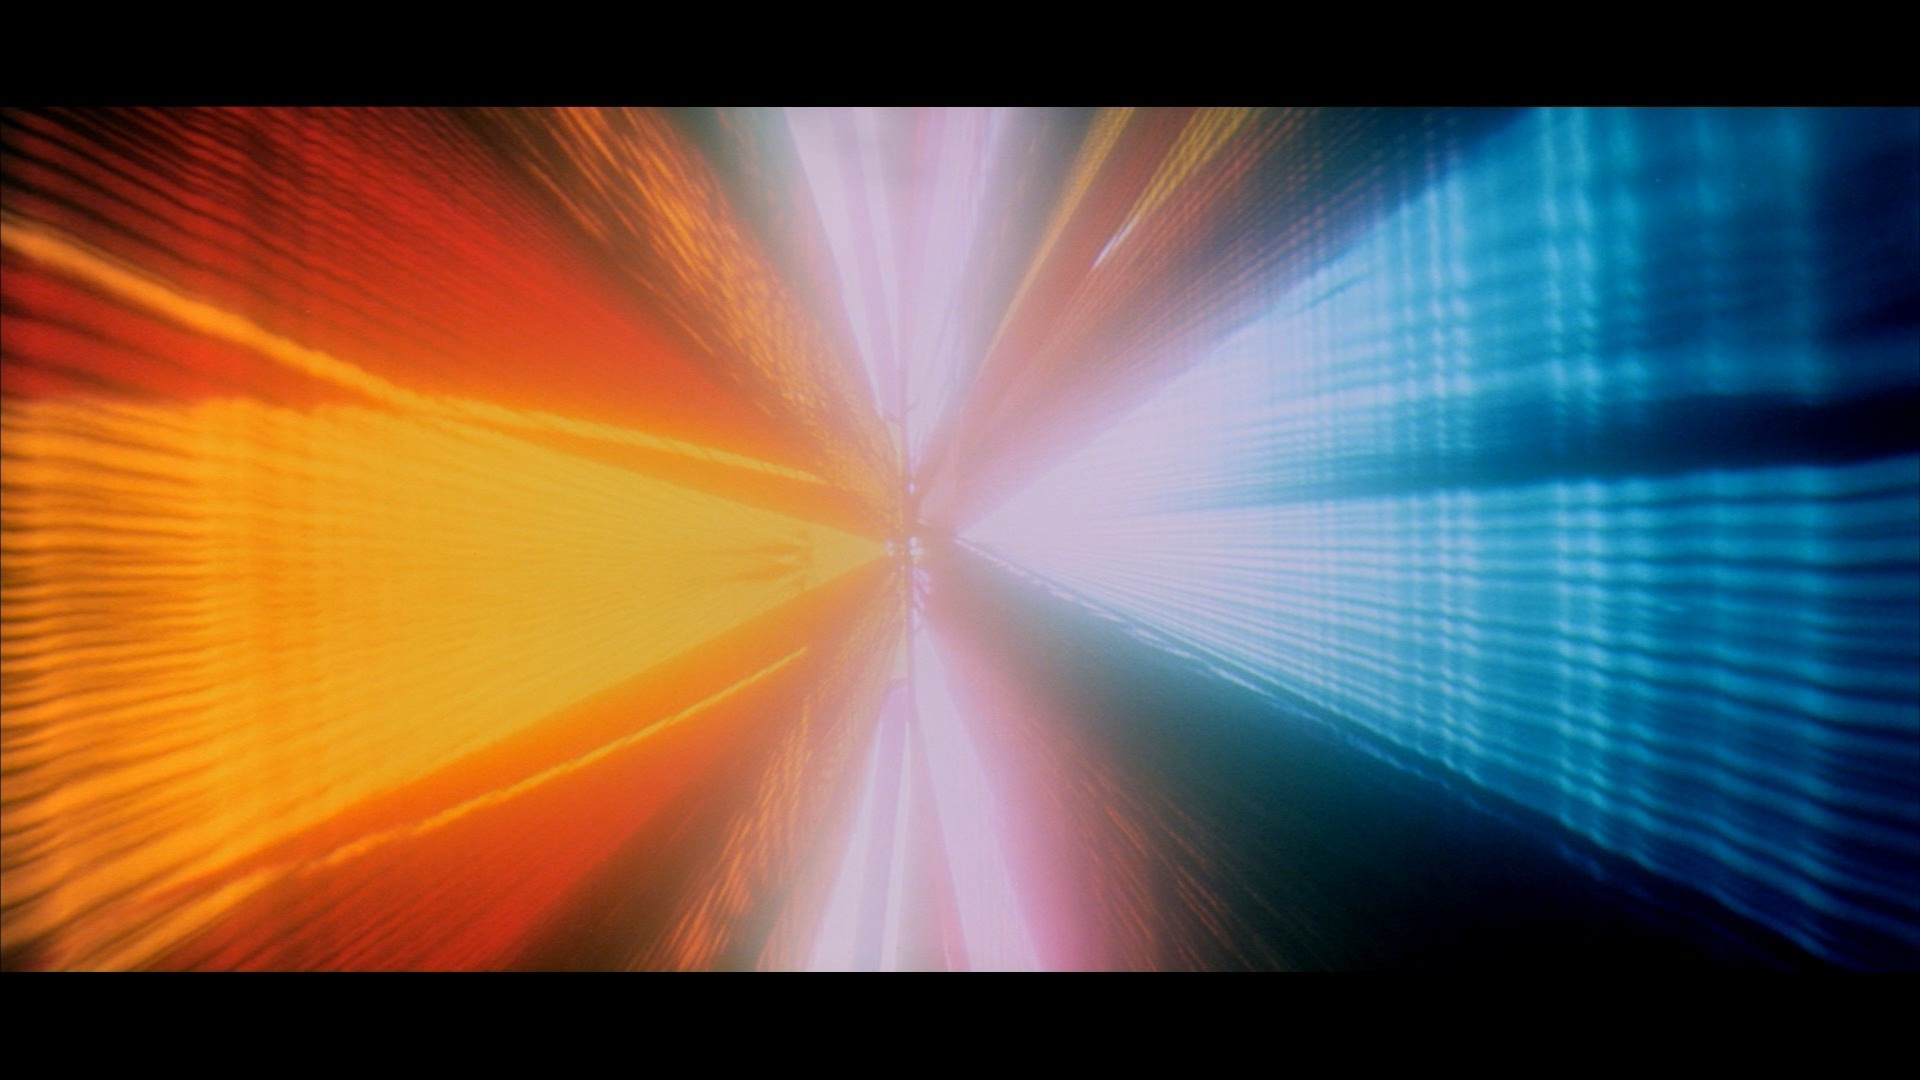 2001: Space Odyssey review (1968)